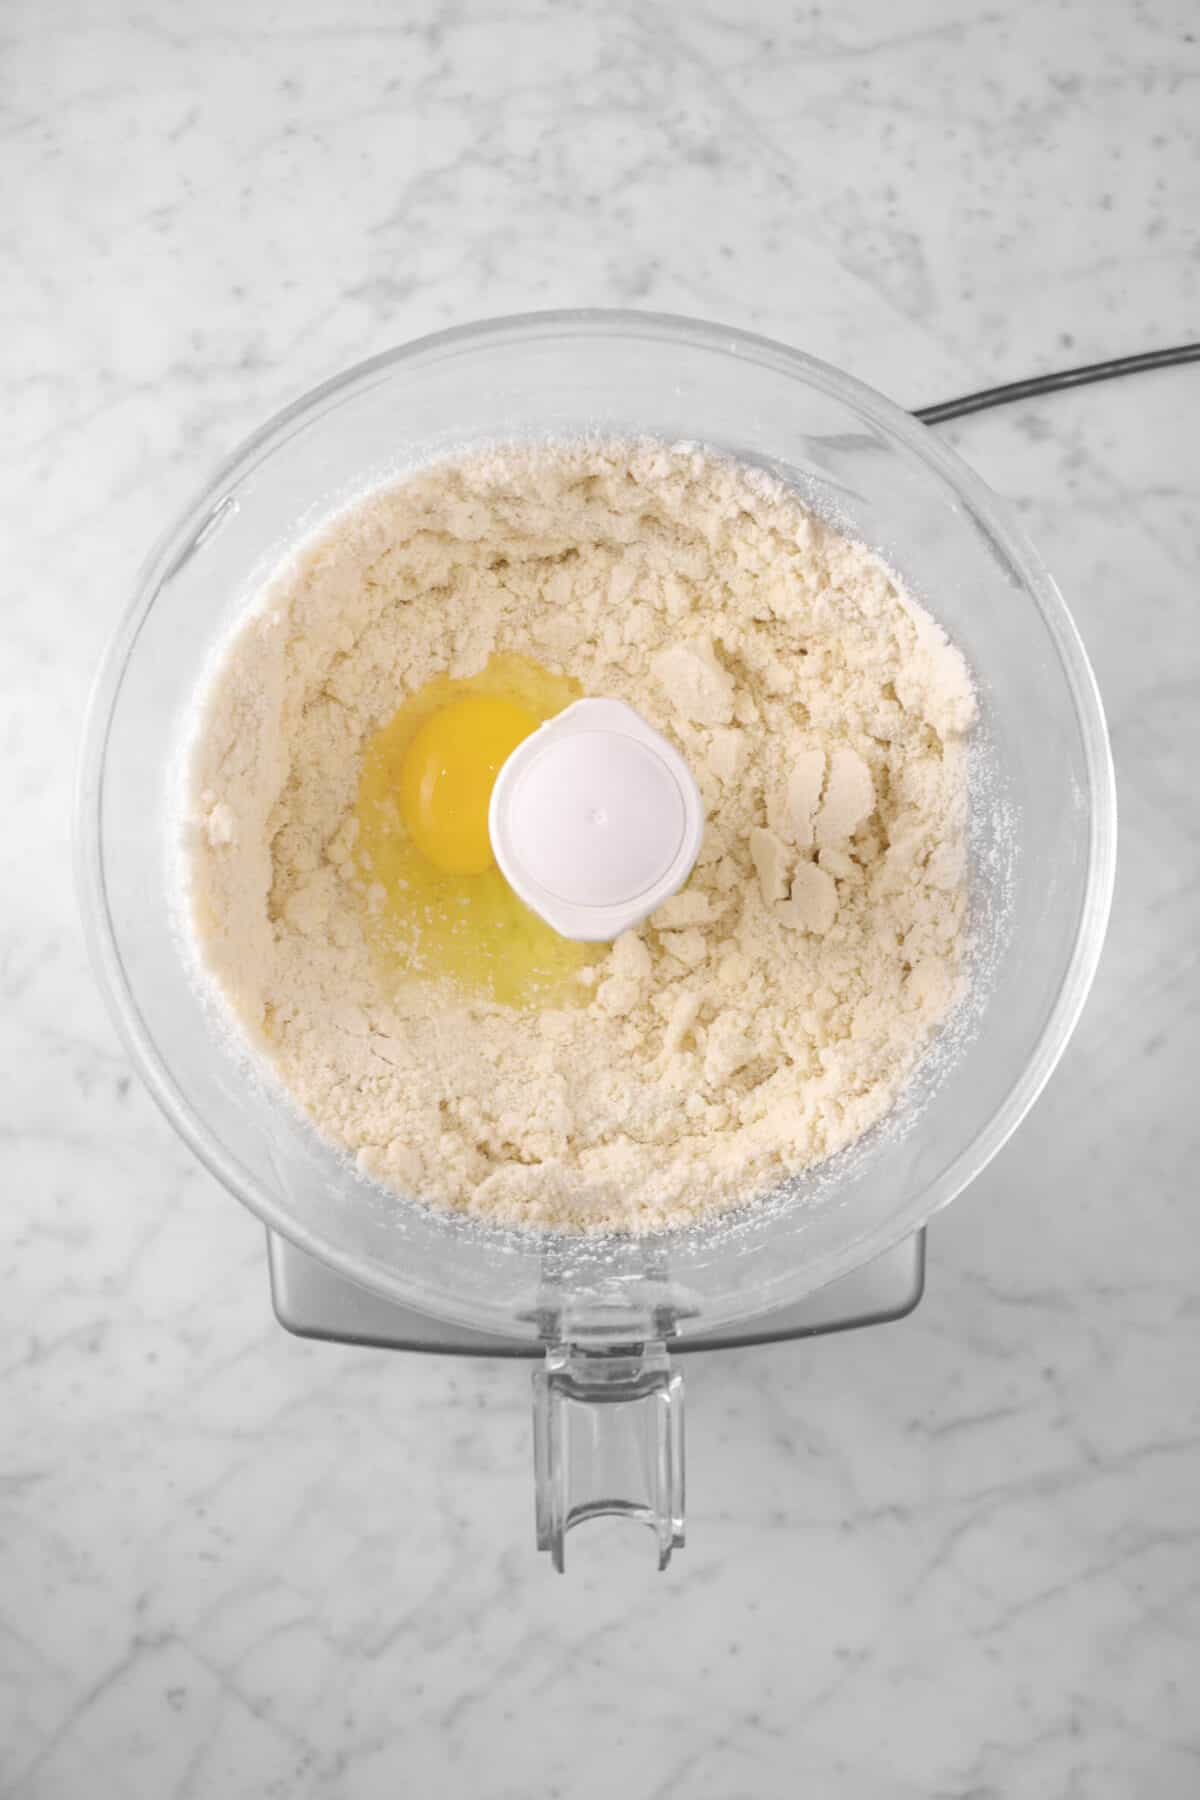 egg added to flour mixture in food processor